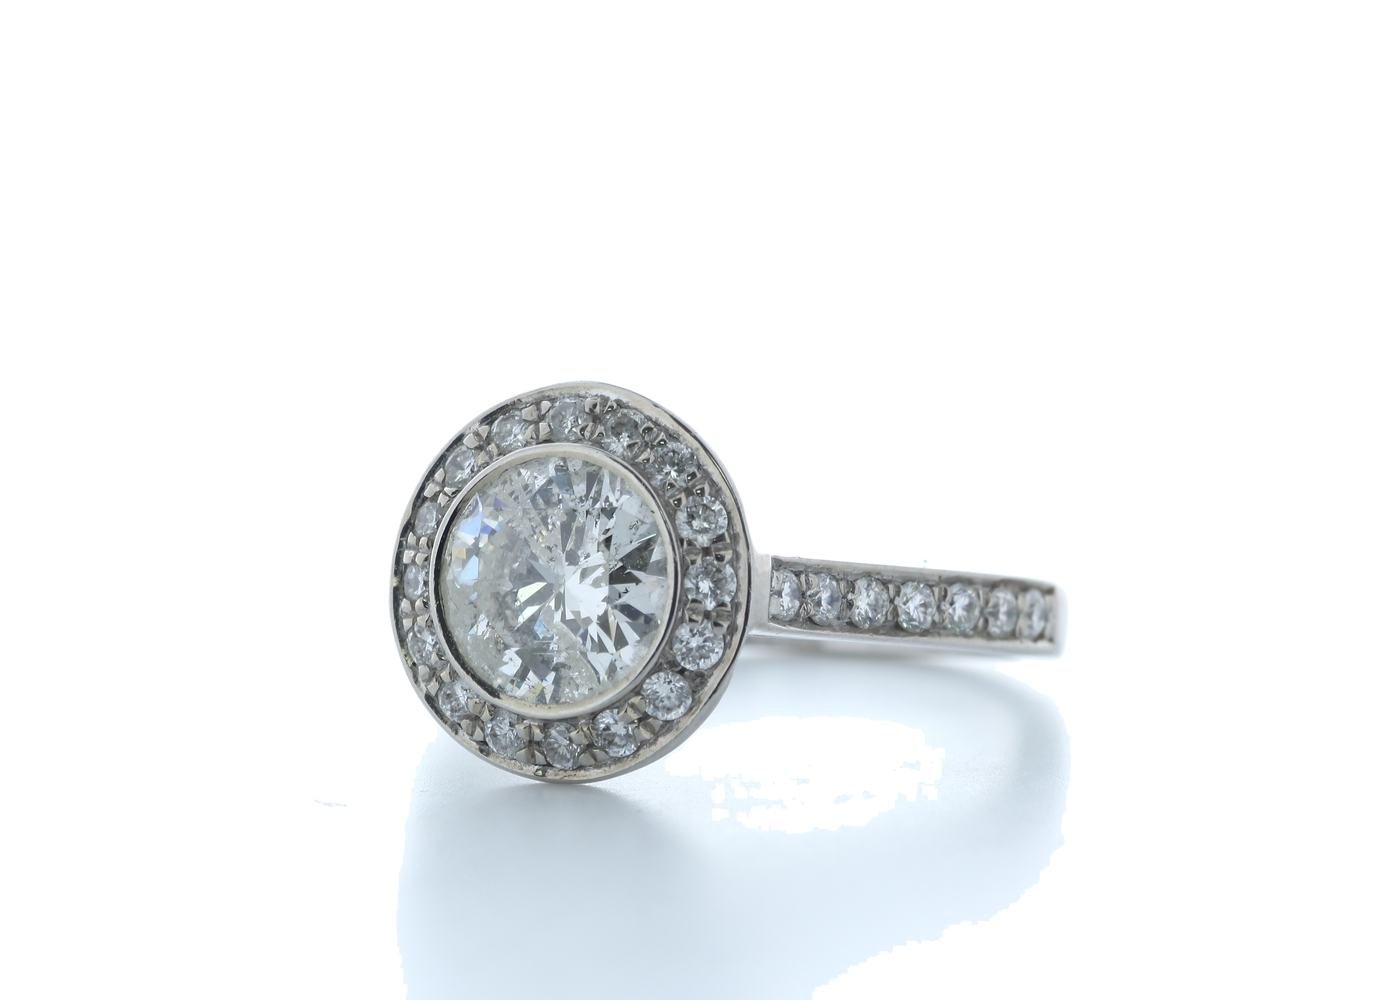 18ct White Gold Single Stone With Halo Setting Ring 2.00 (1.50) Carats - Image 2 of 5